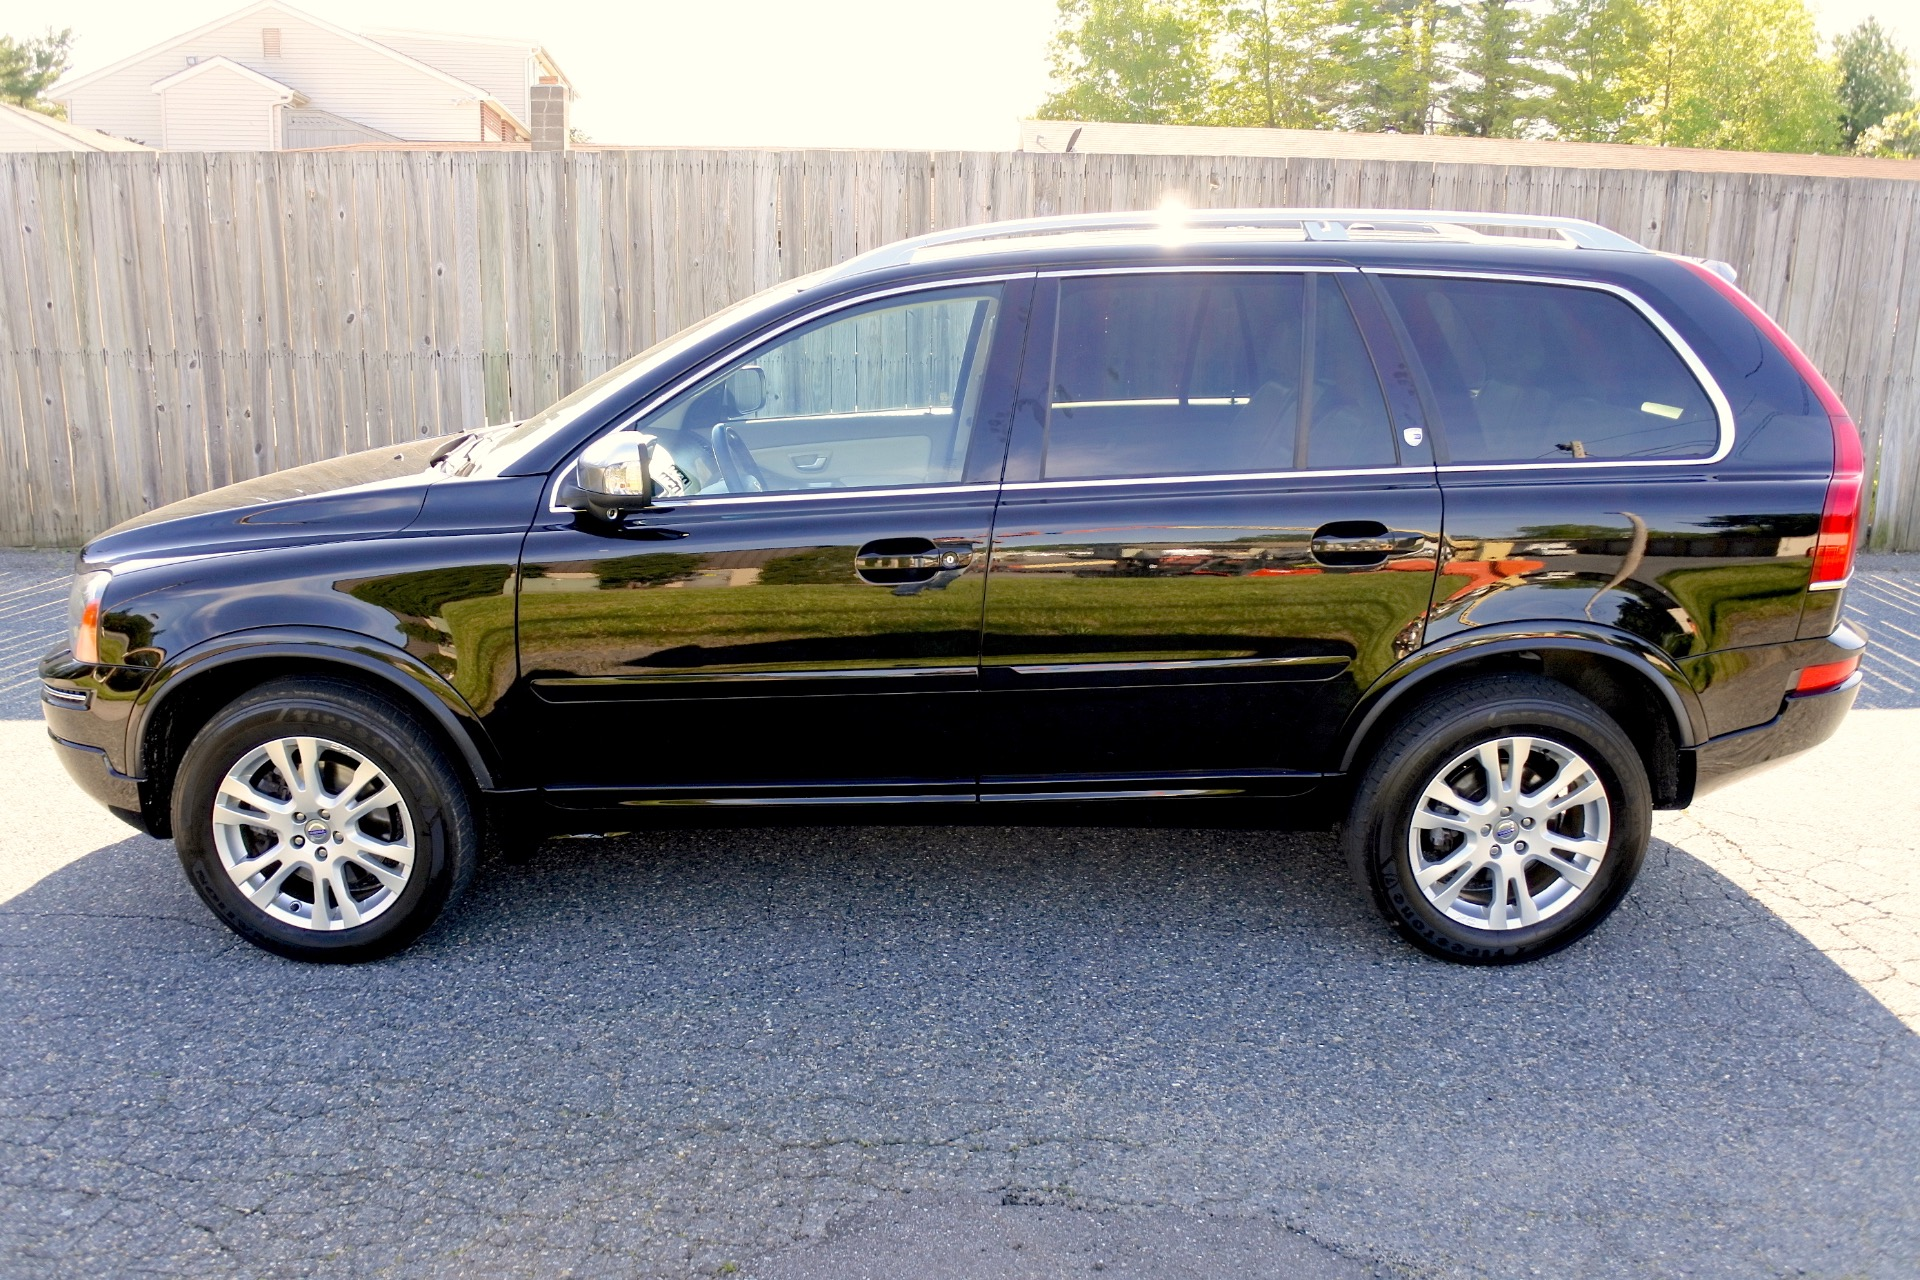 Used 2014 Volvo Xc90 AWD 4dr Used 2014 Volvo Xc90 AWD 4dr for sale  at Metro West Motorcars LLC in Shrewsbury MA 2